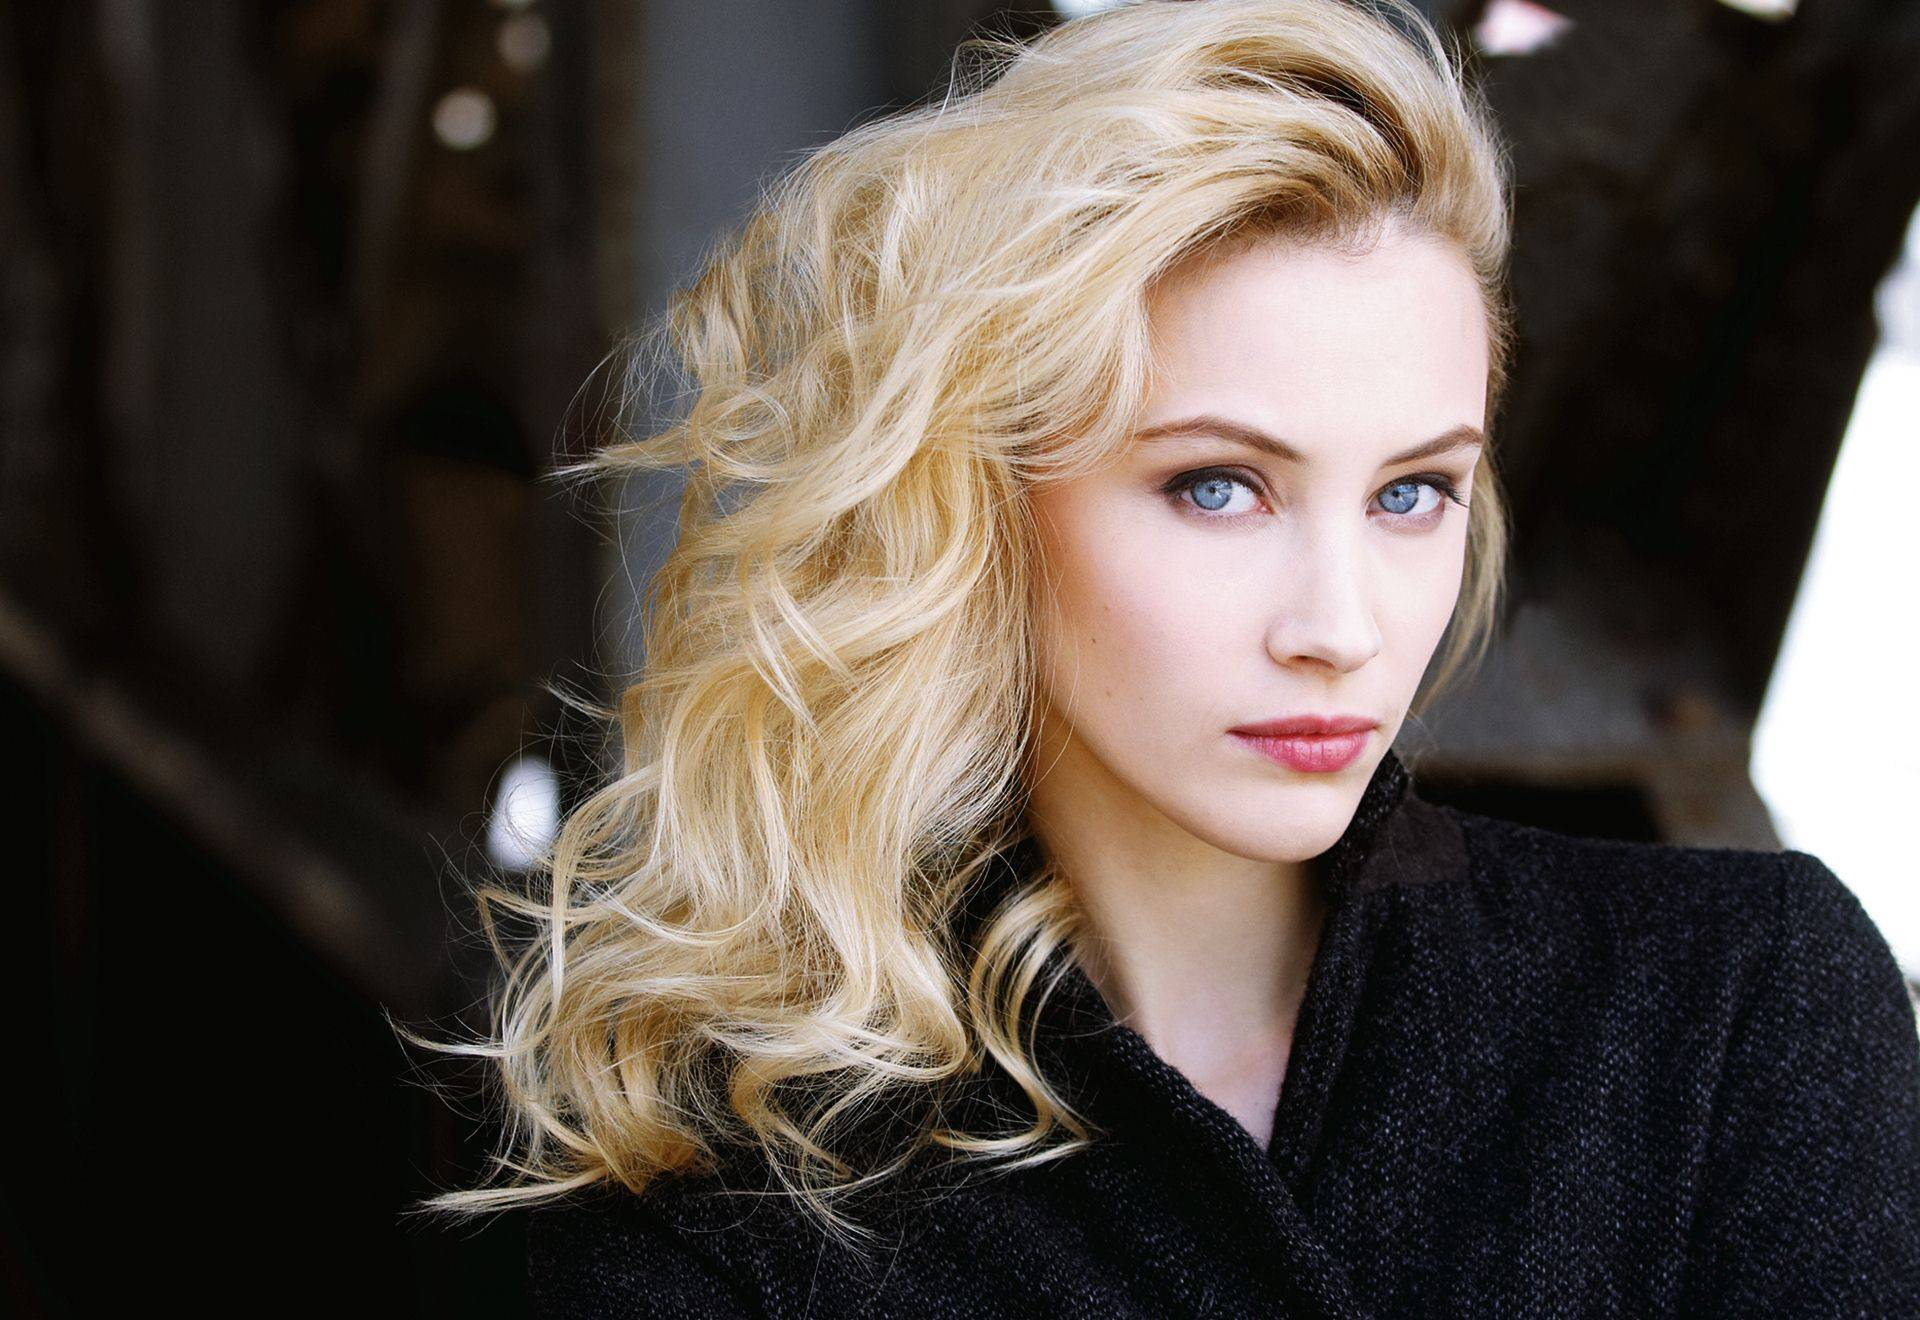 Sarah Gadons widescreen wallpapers